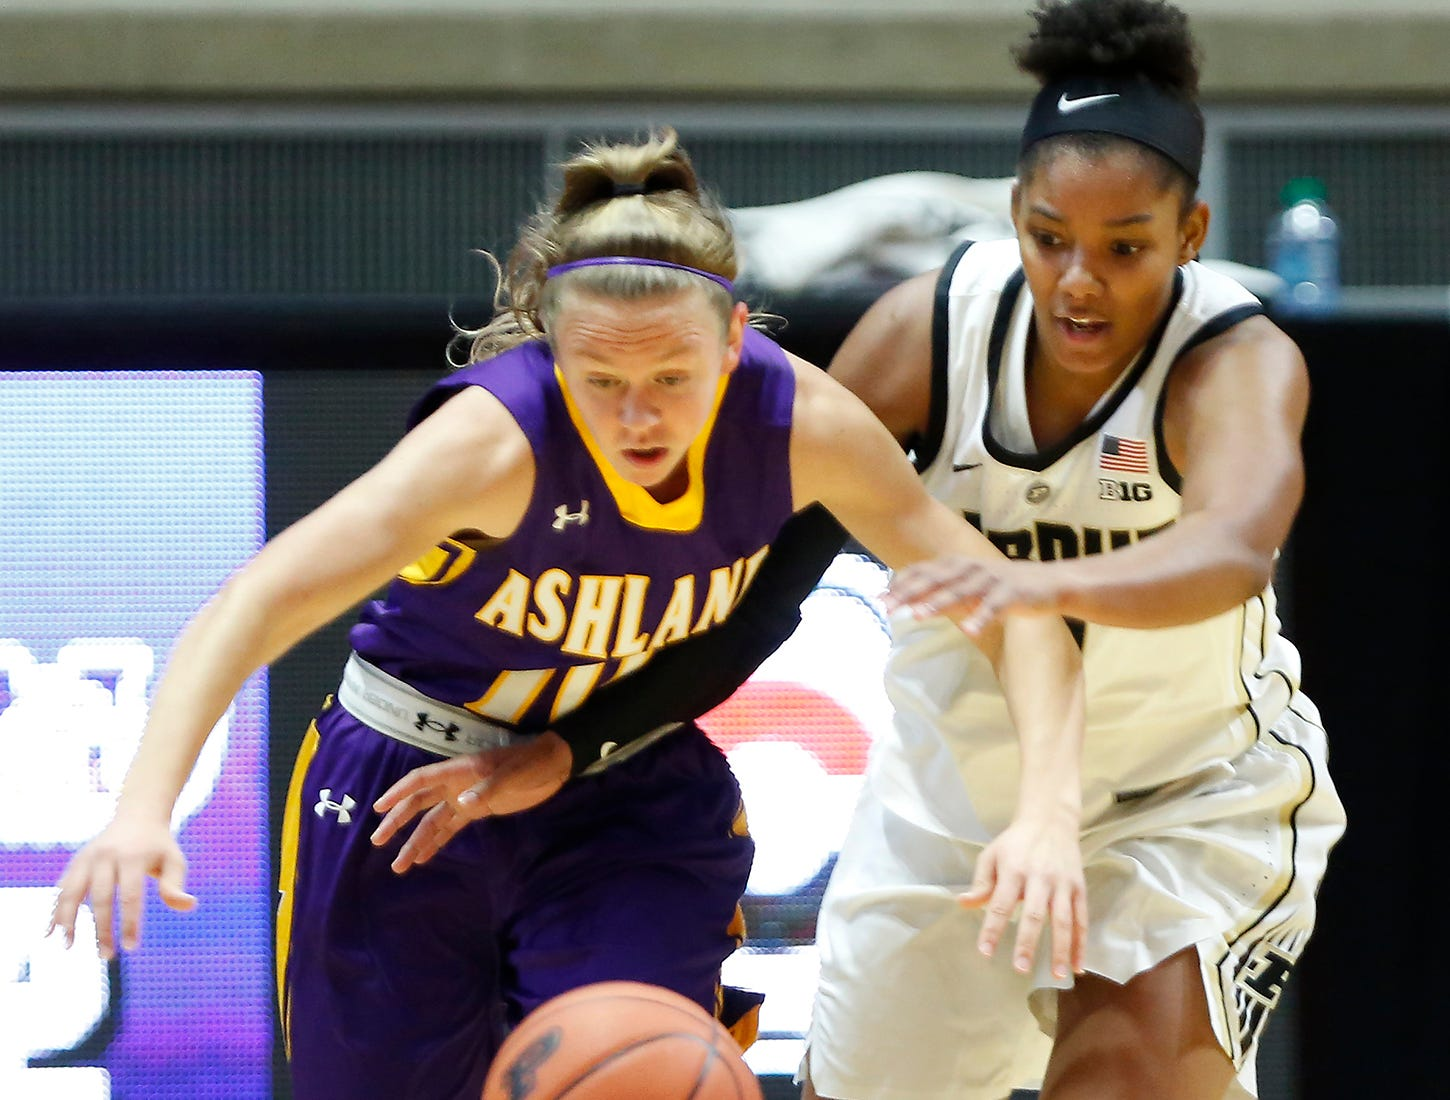 Dominique Oden of Purdue and Hallie Heidemann of Ashland chase a loose ball Sunday, November 4, 2018, at Mackey Arena. Purdue defeated Ashland 85-69.